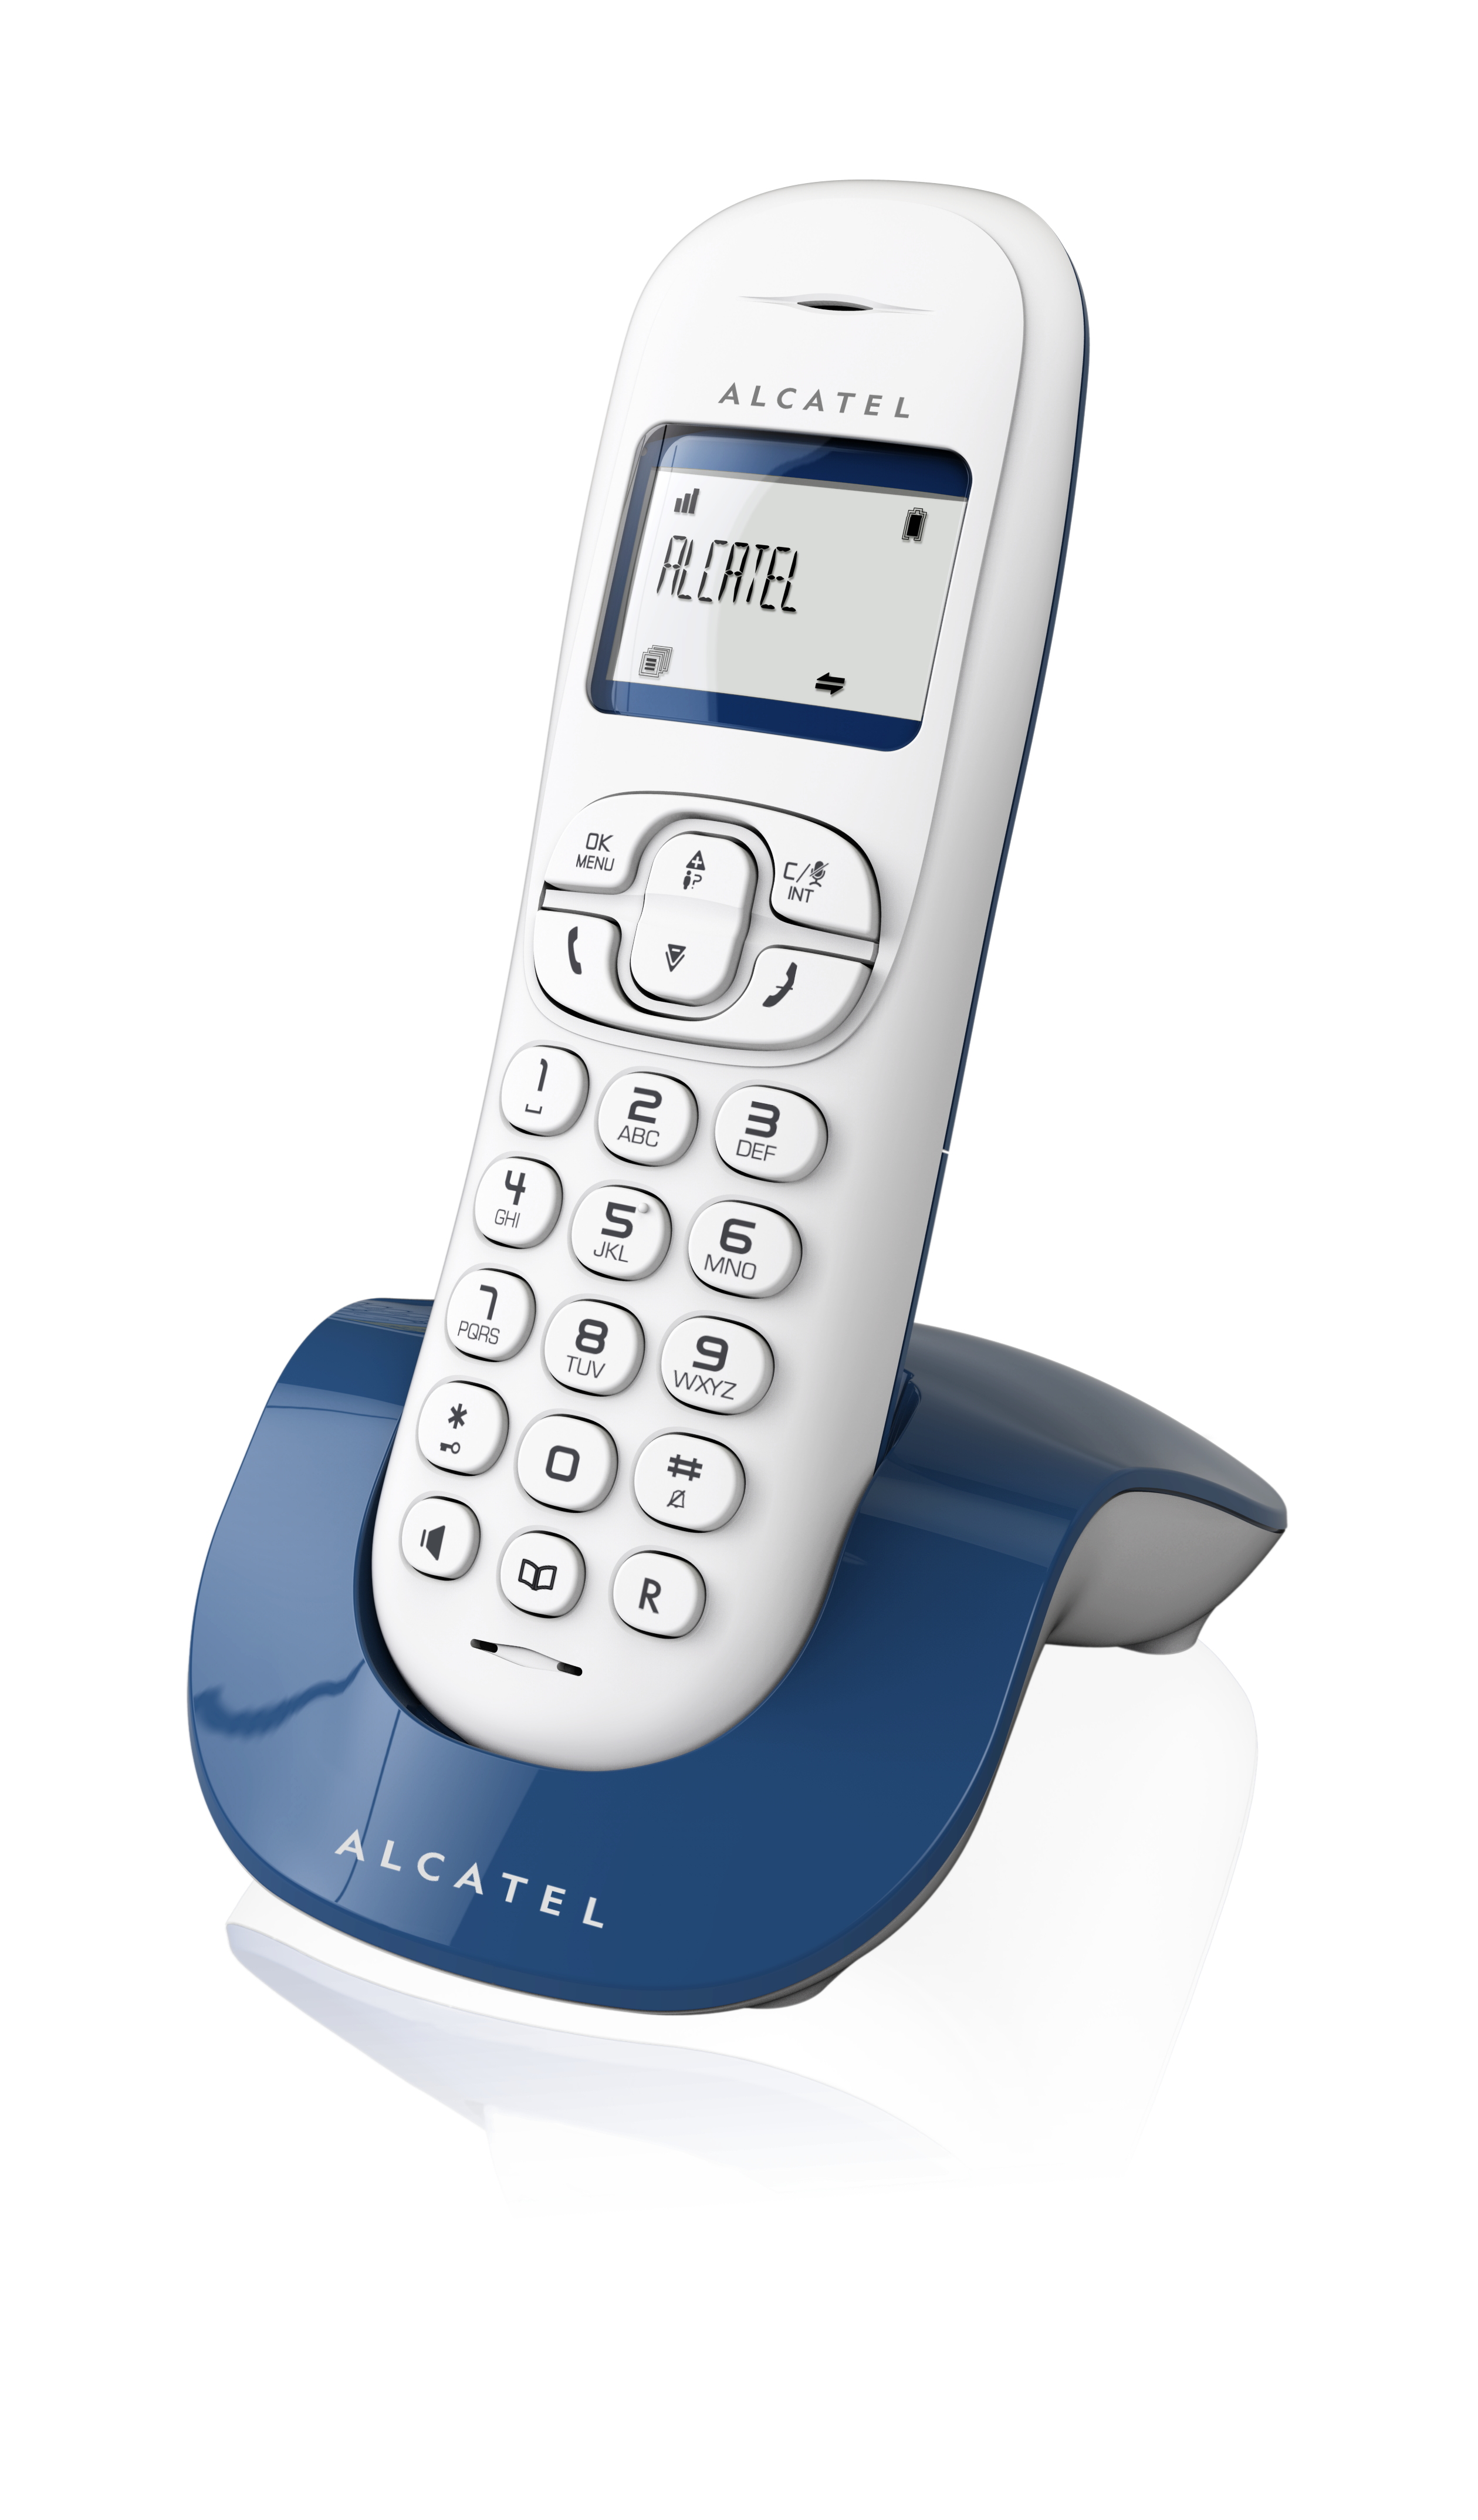 Alcatel C250 et C250 Voice